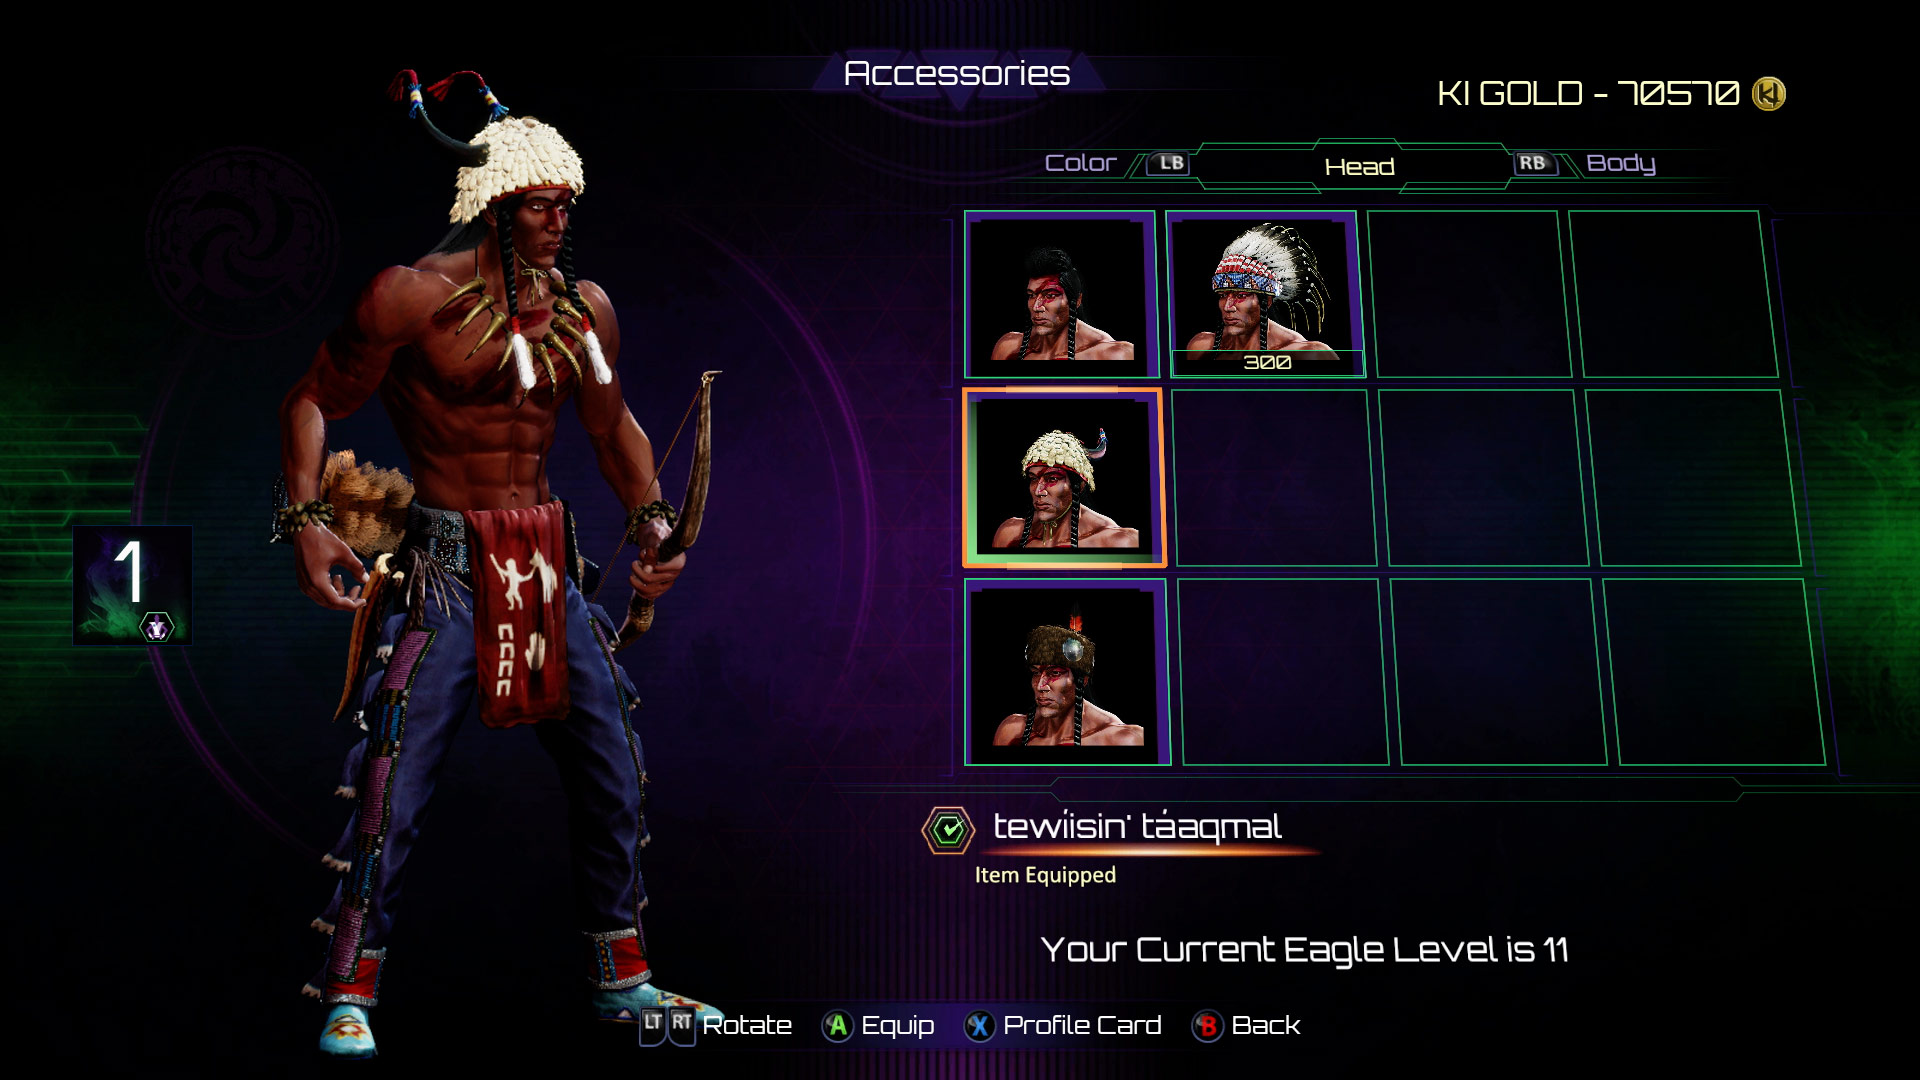 Eagle's accessories in Killer Instinct 6 out of 8 image gallery